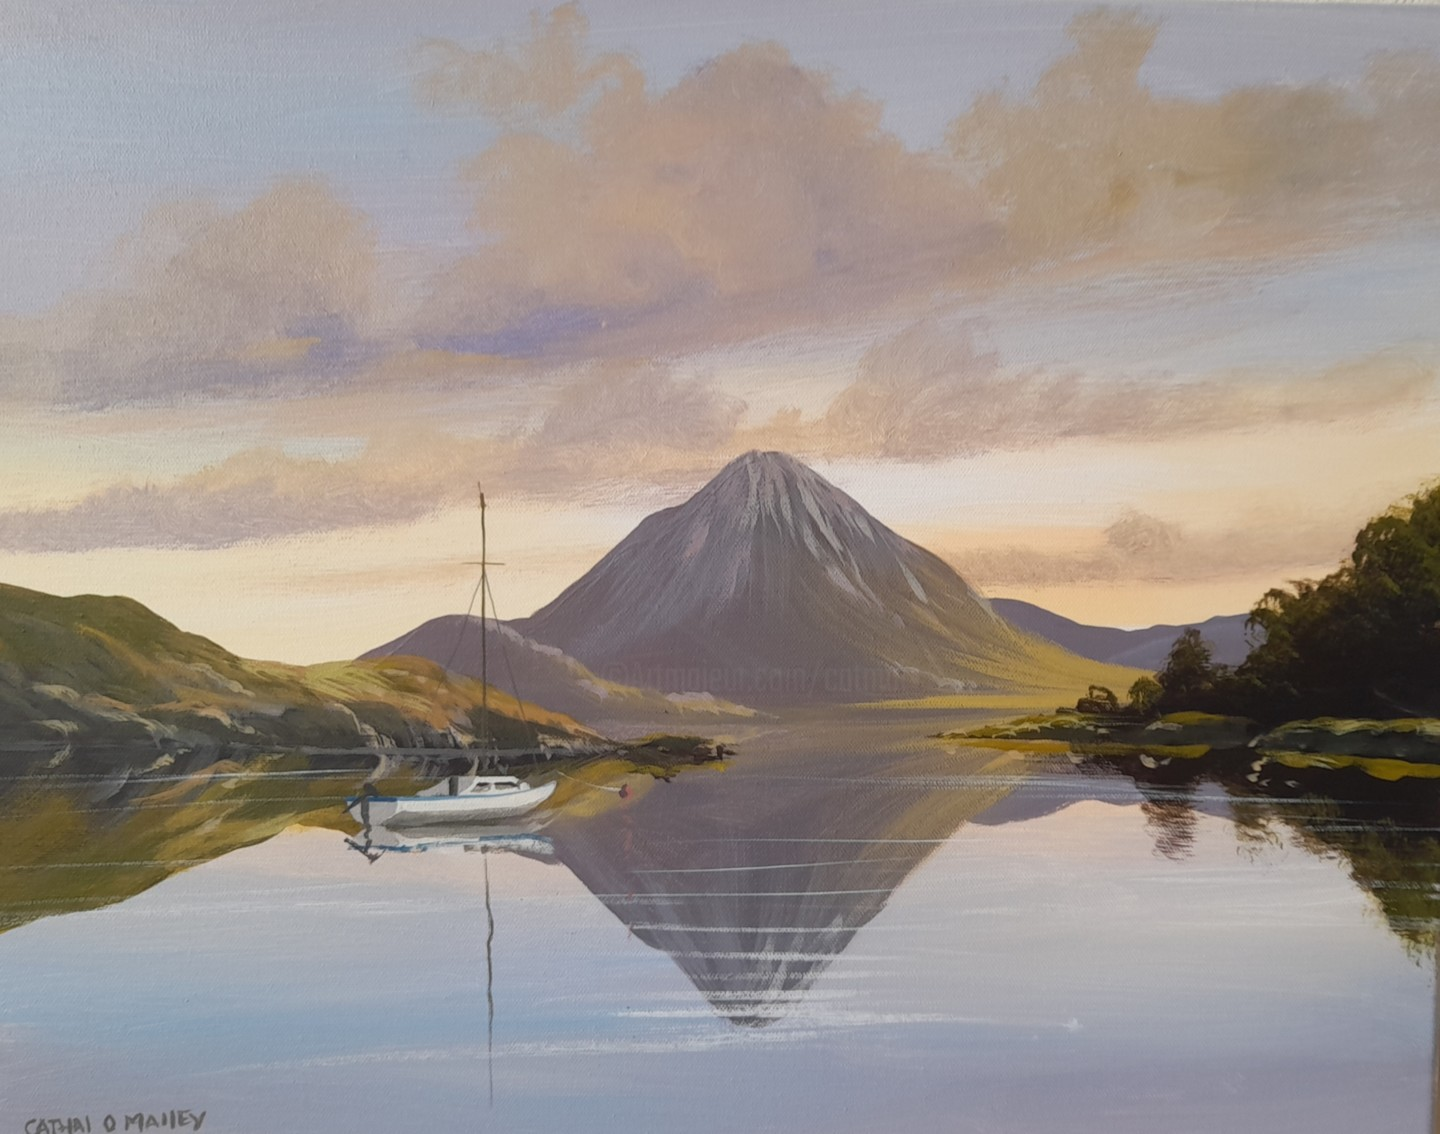 Cathal O Malley - Errigal shade